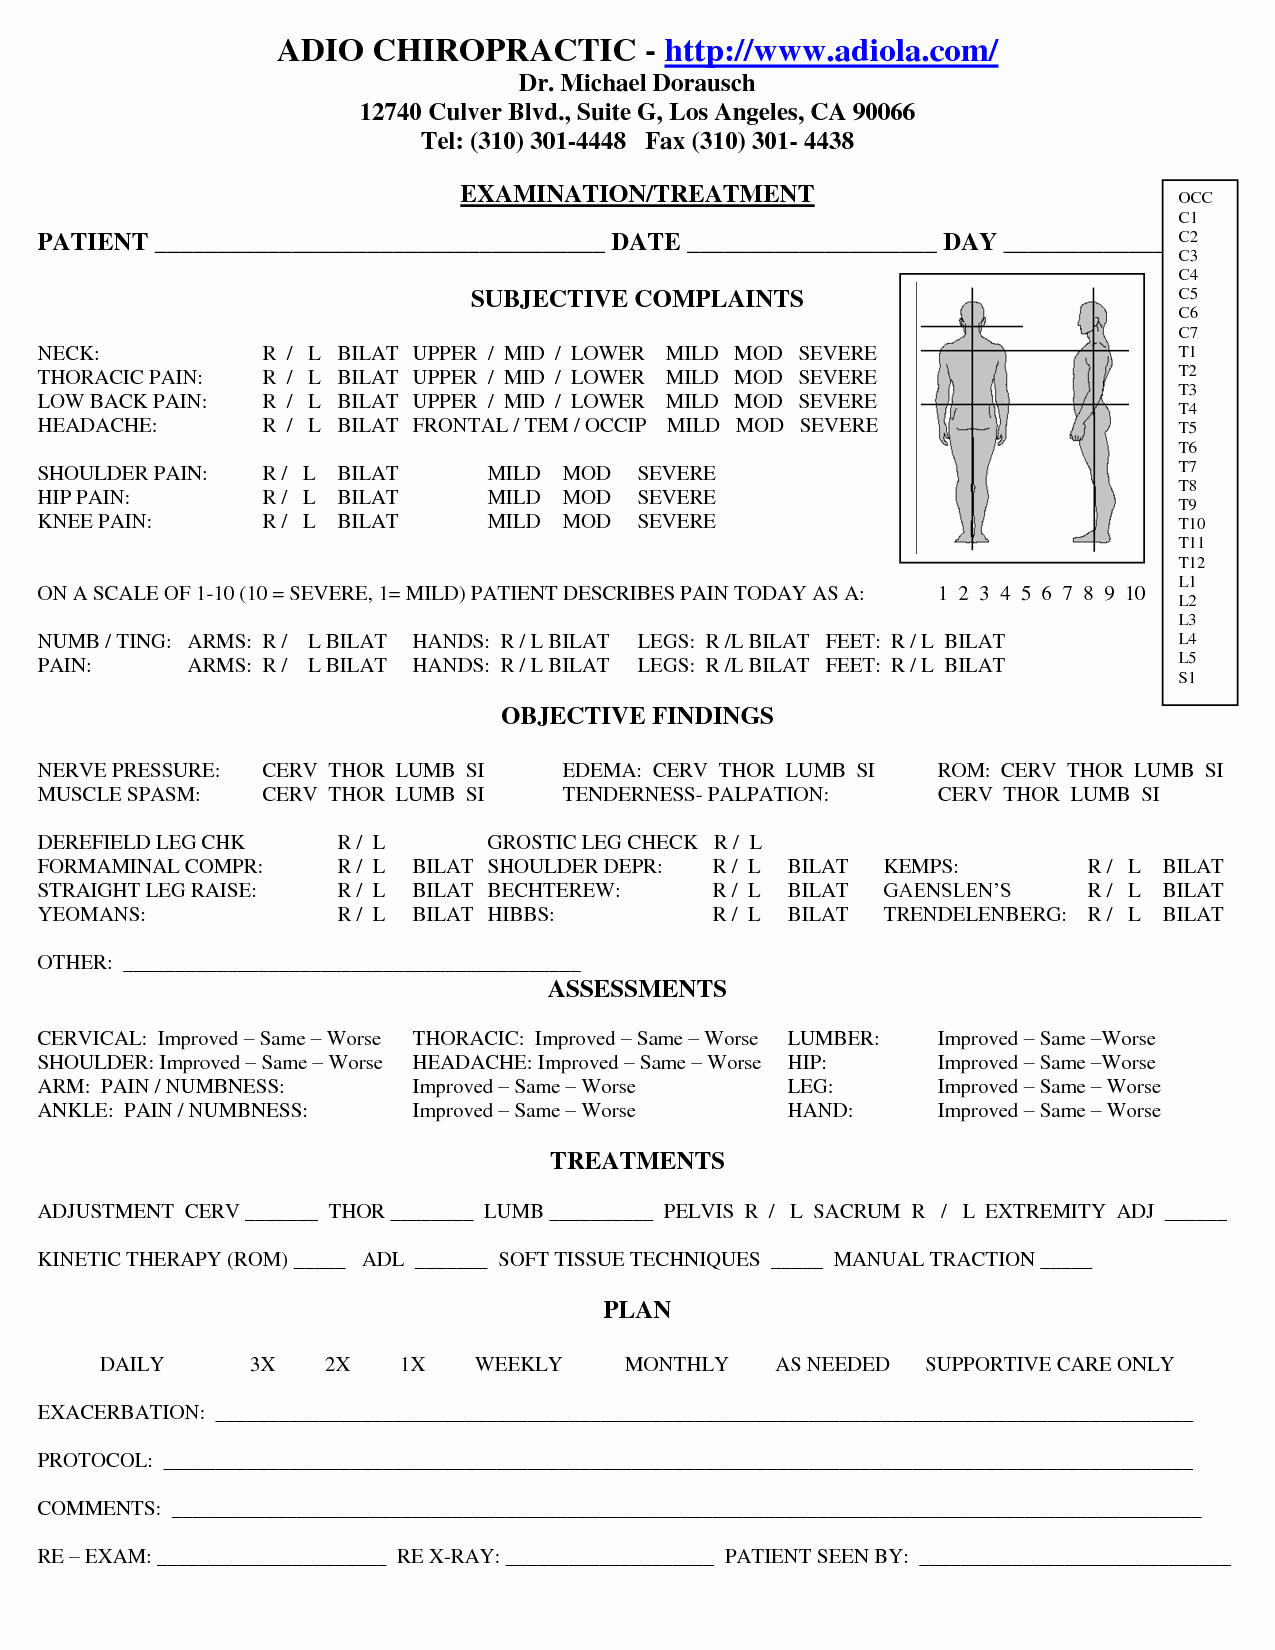 Physical therapy Daily Note Template Inspirational Chiropractic soap Notes Chiropracitic Pinterest